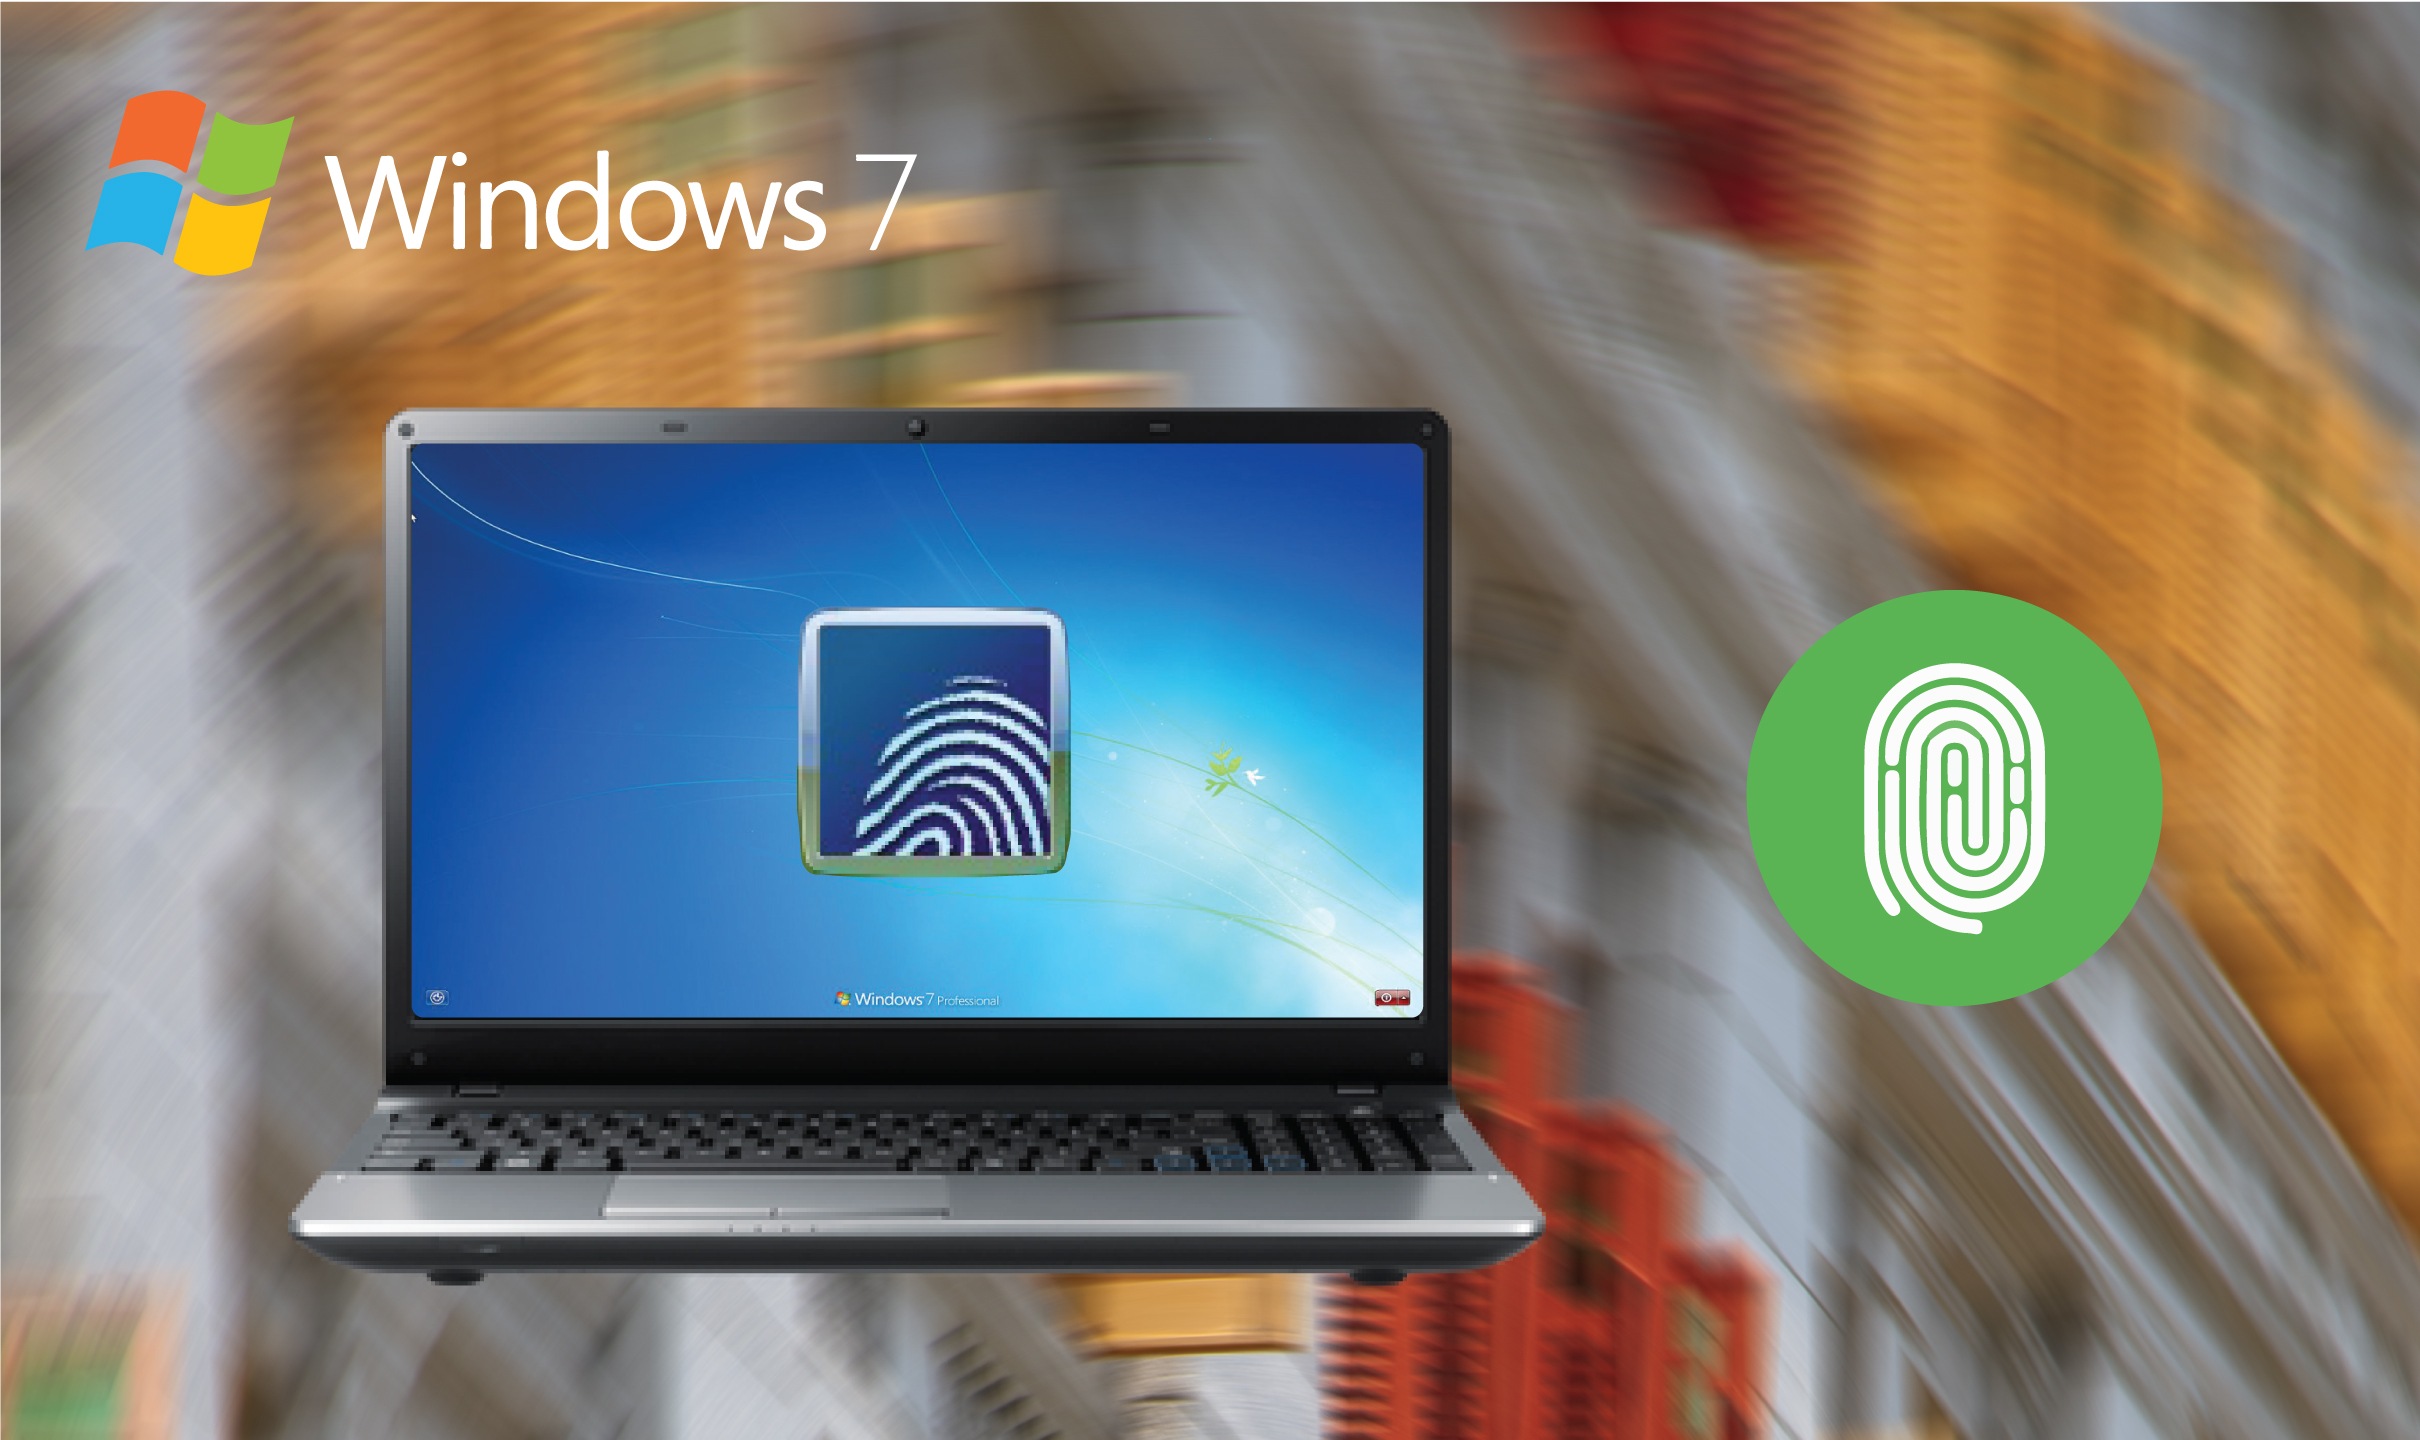 The best security tools with Windows 7 Professional